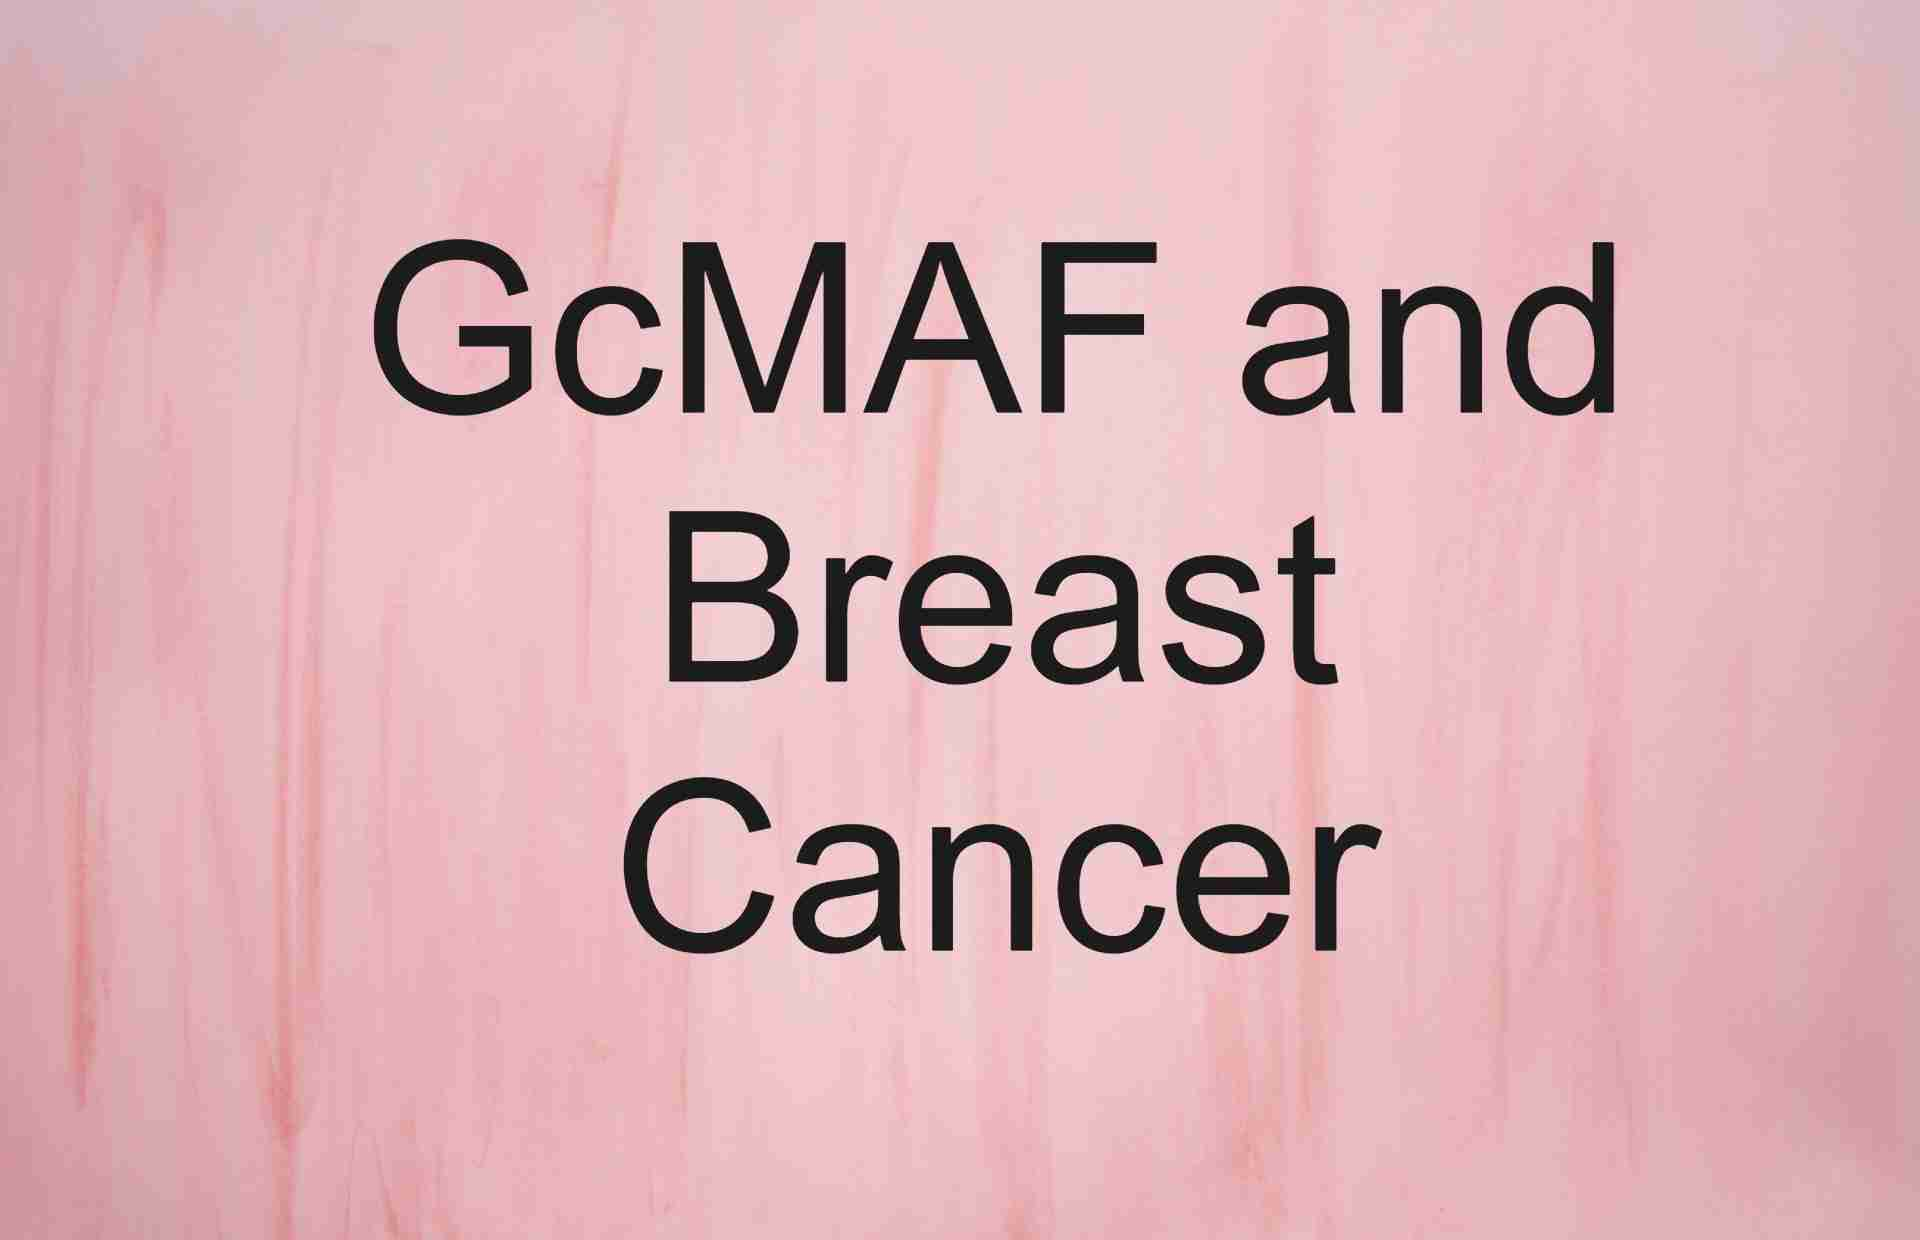 GcMAF and Breast Cancer